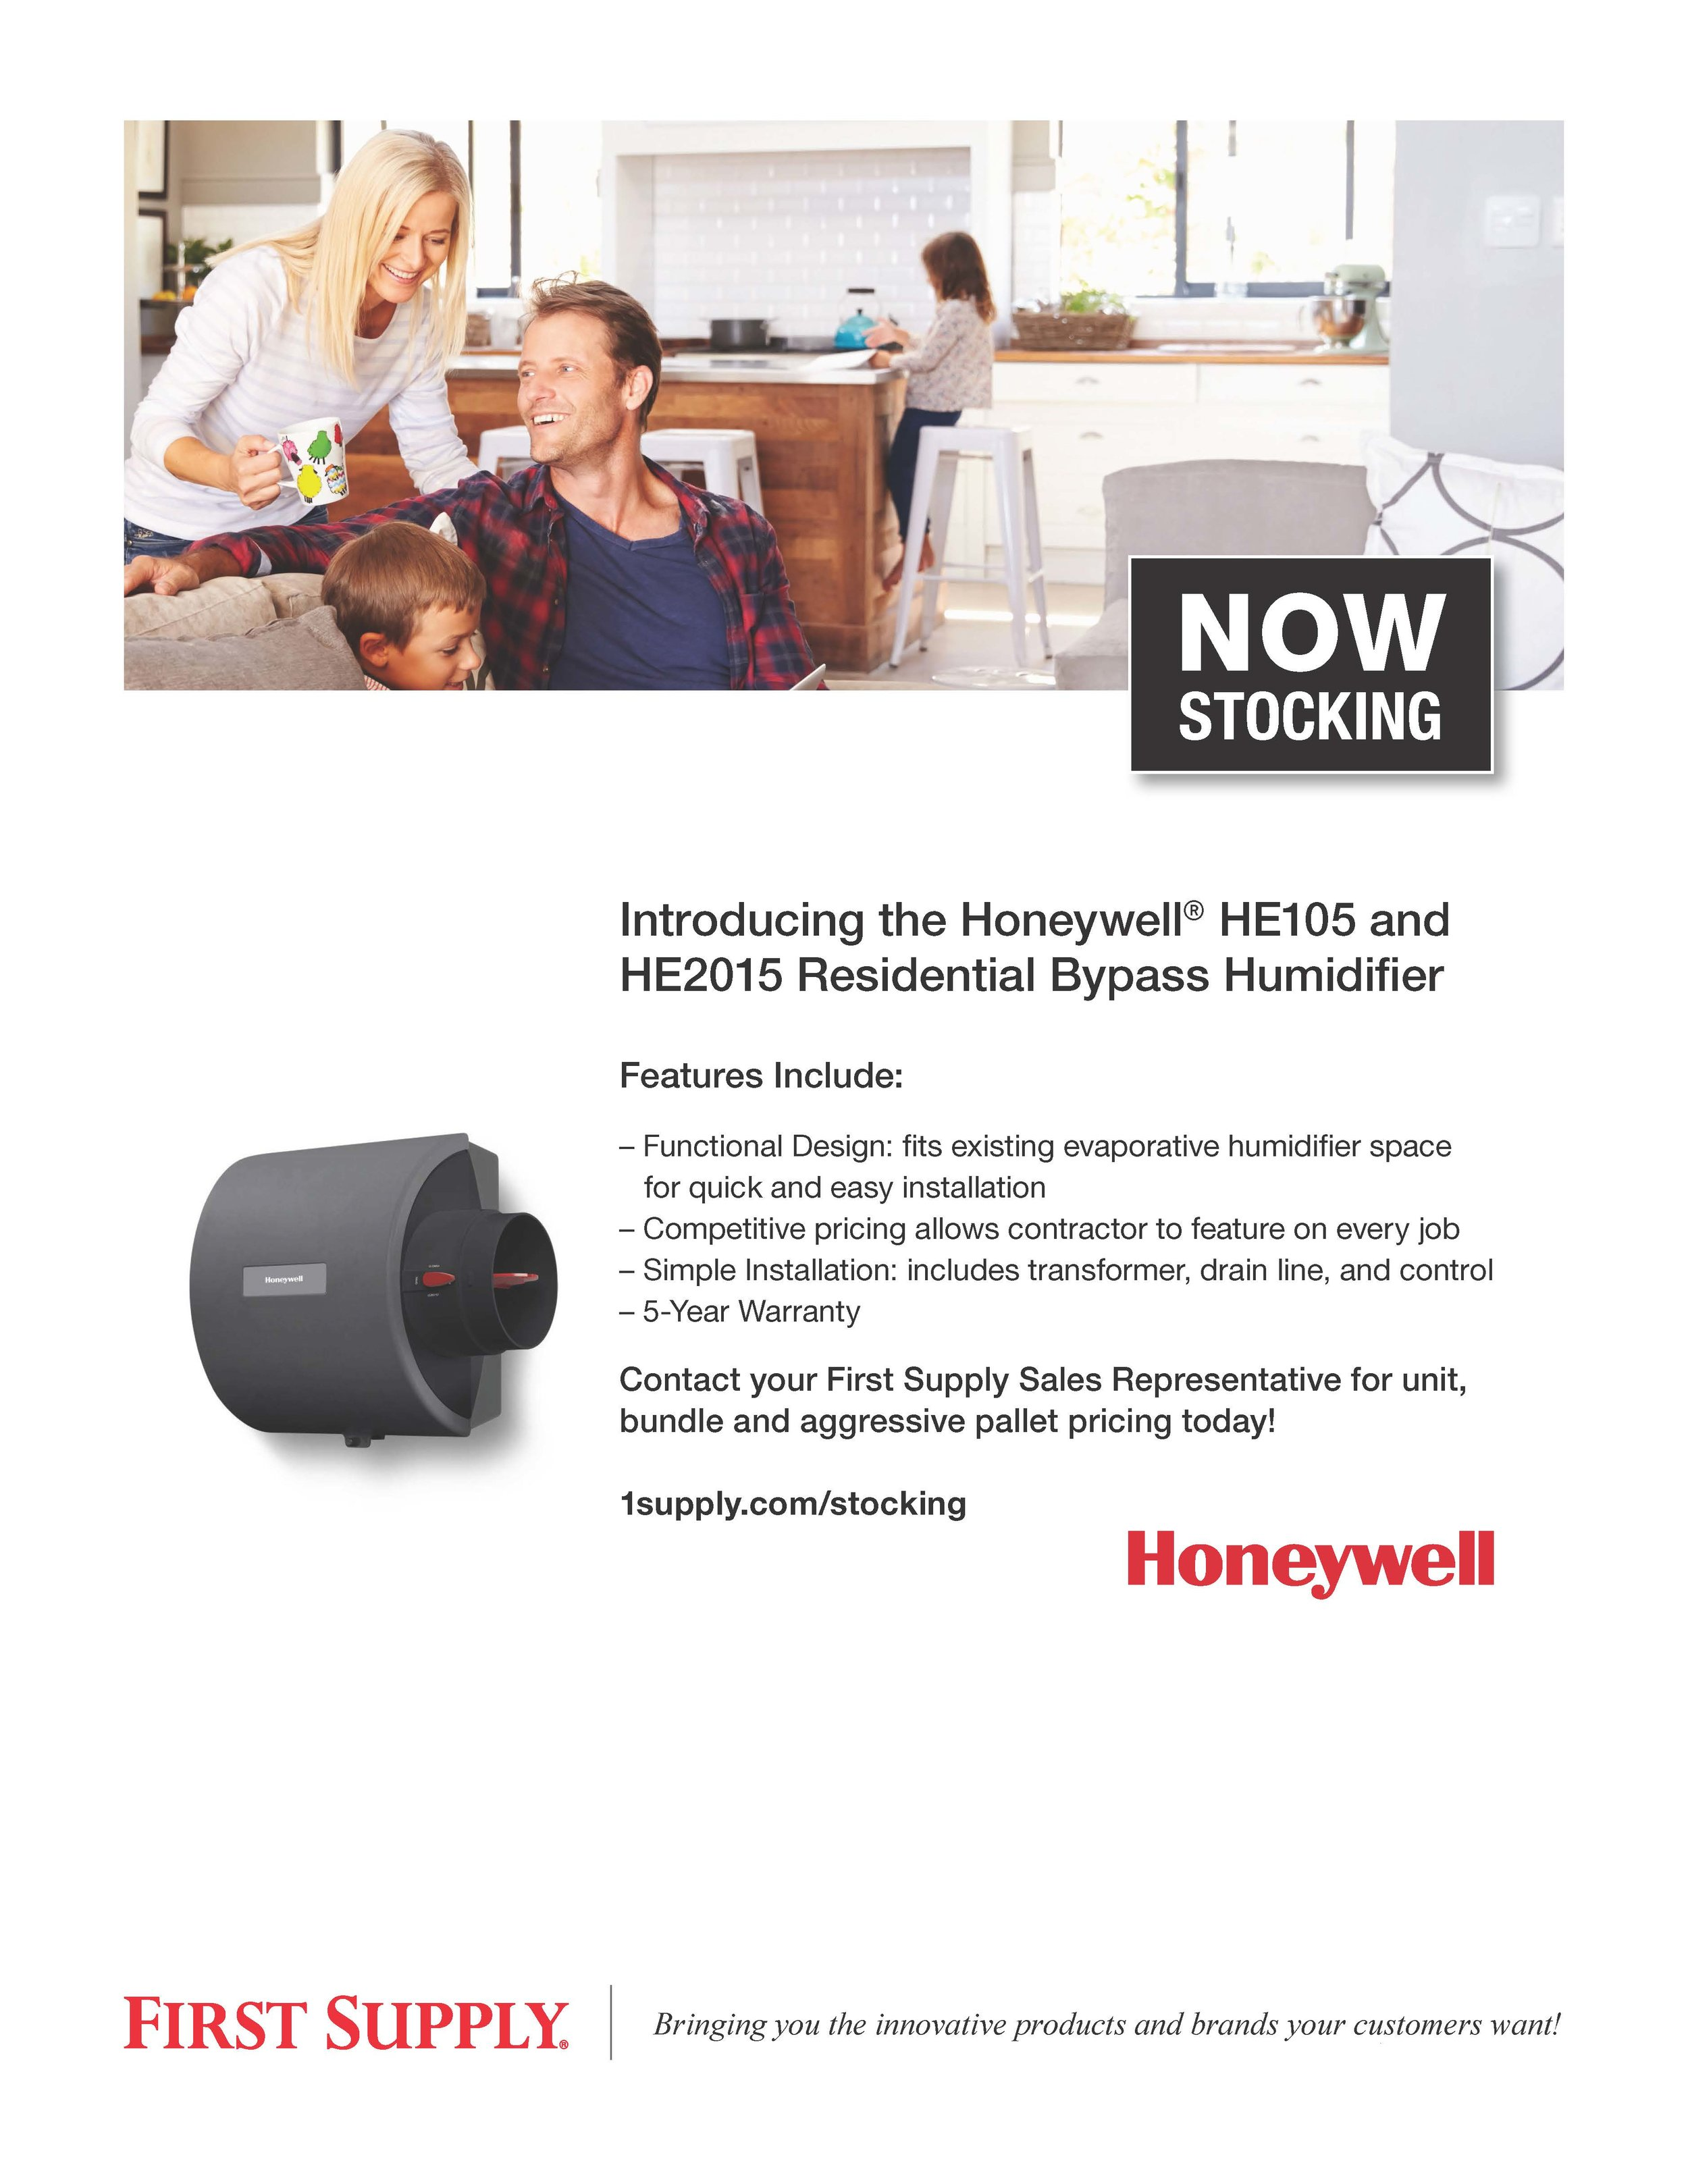 Honeywell HE105 & HE2015 Residential Bypass Humidifier [ download pdf ]